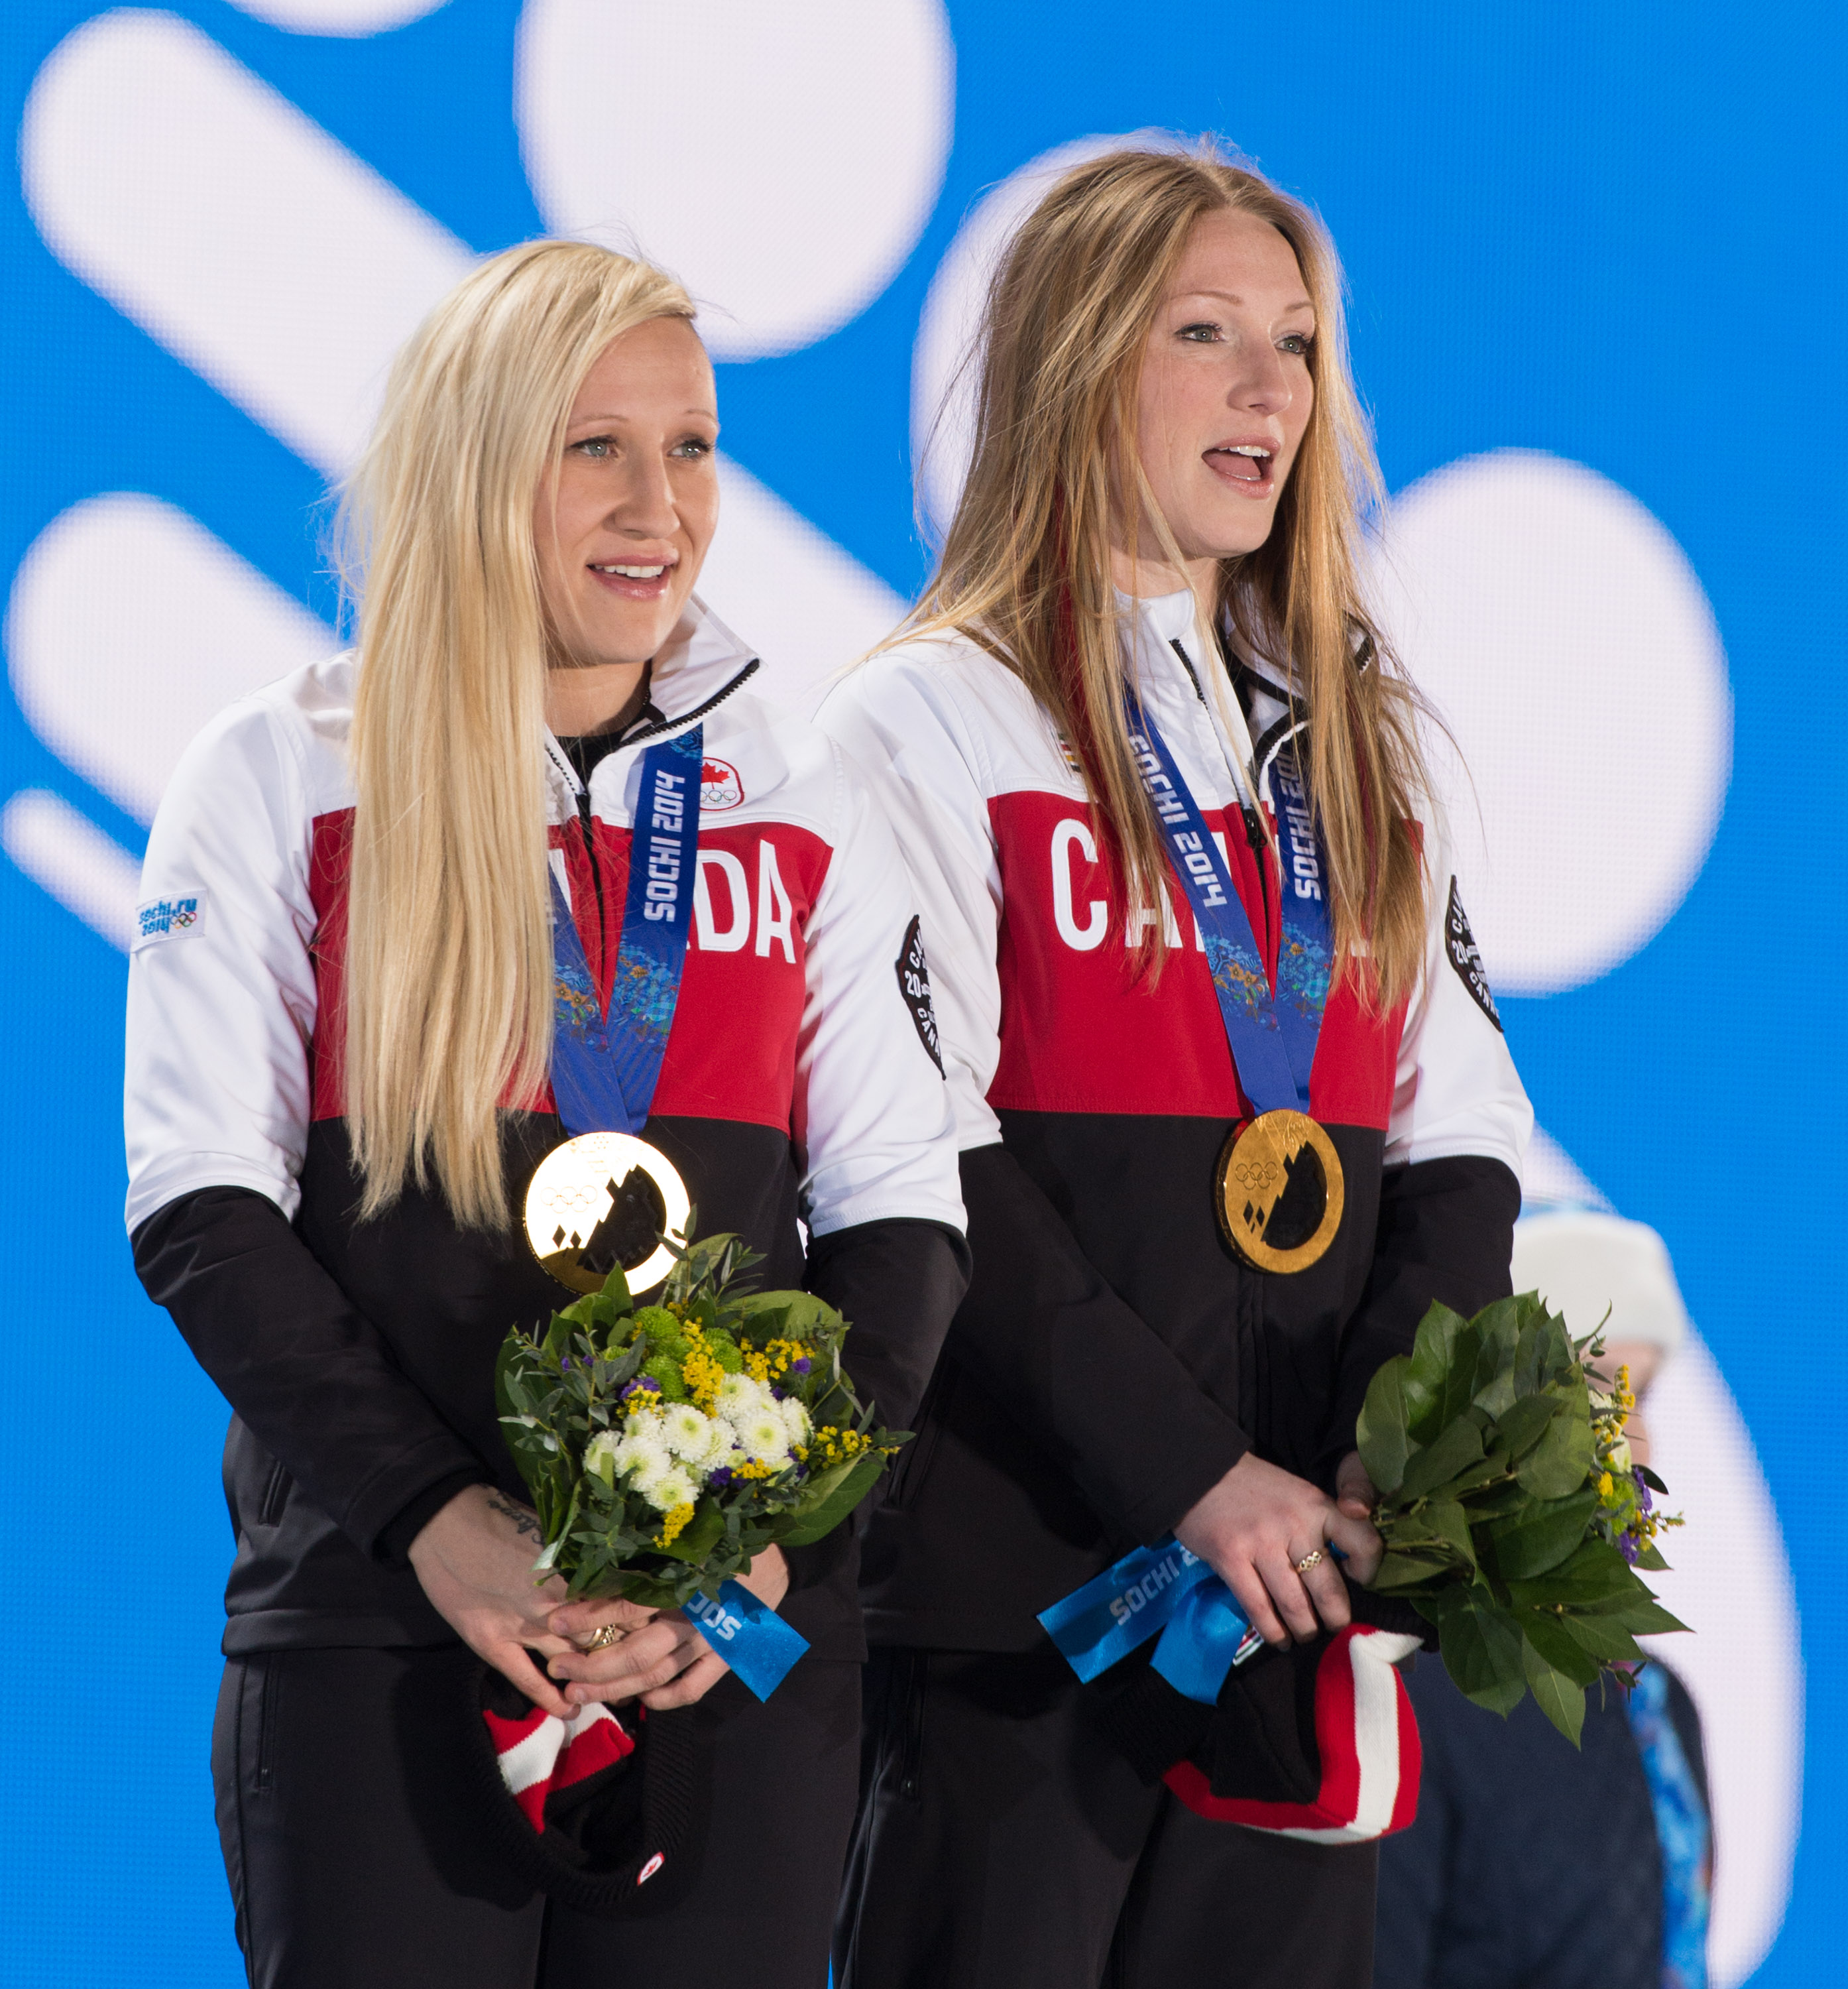 Kaillie Humphries and Heather Moyse receive their Sochi 2014 Olympic gold medals.